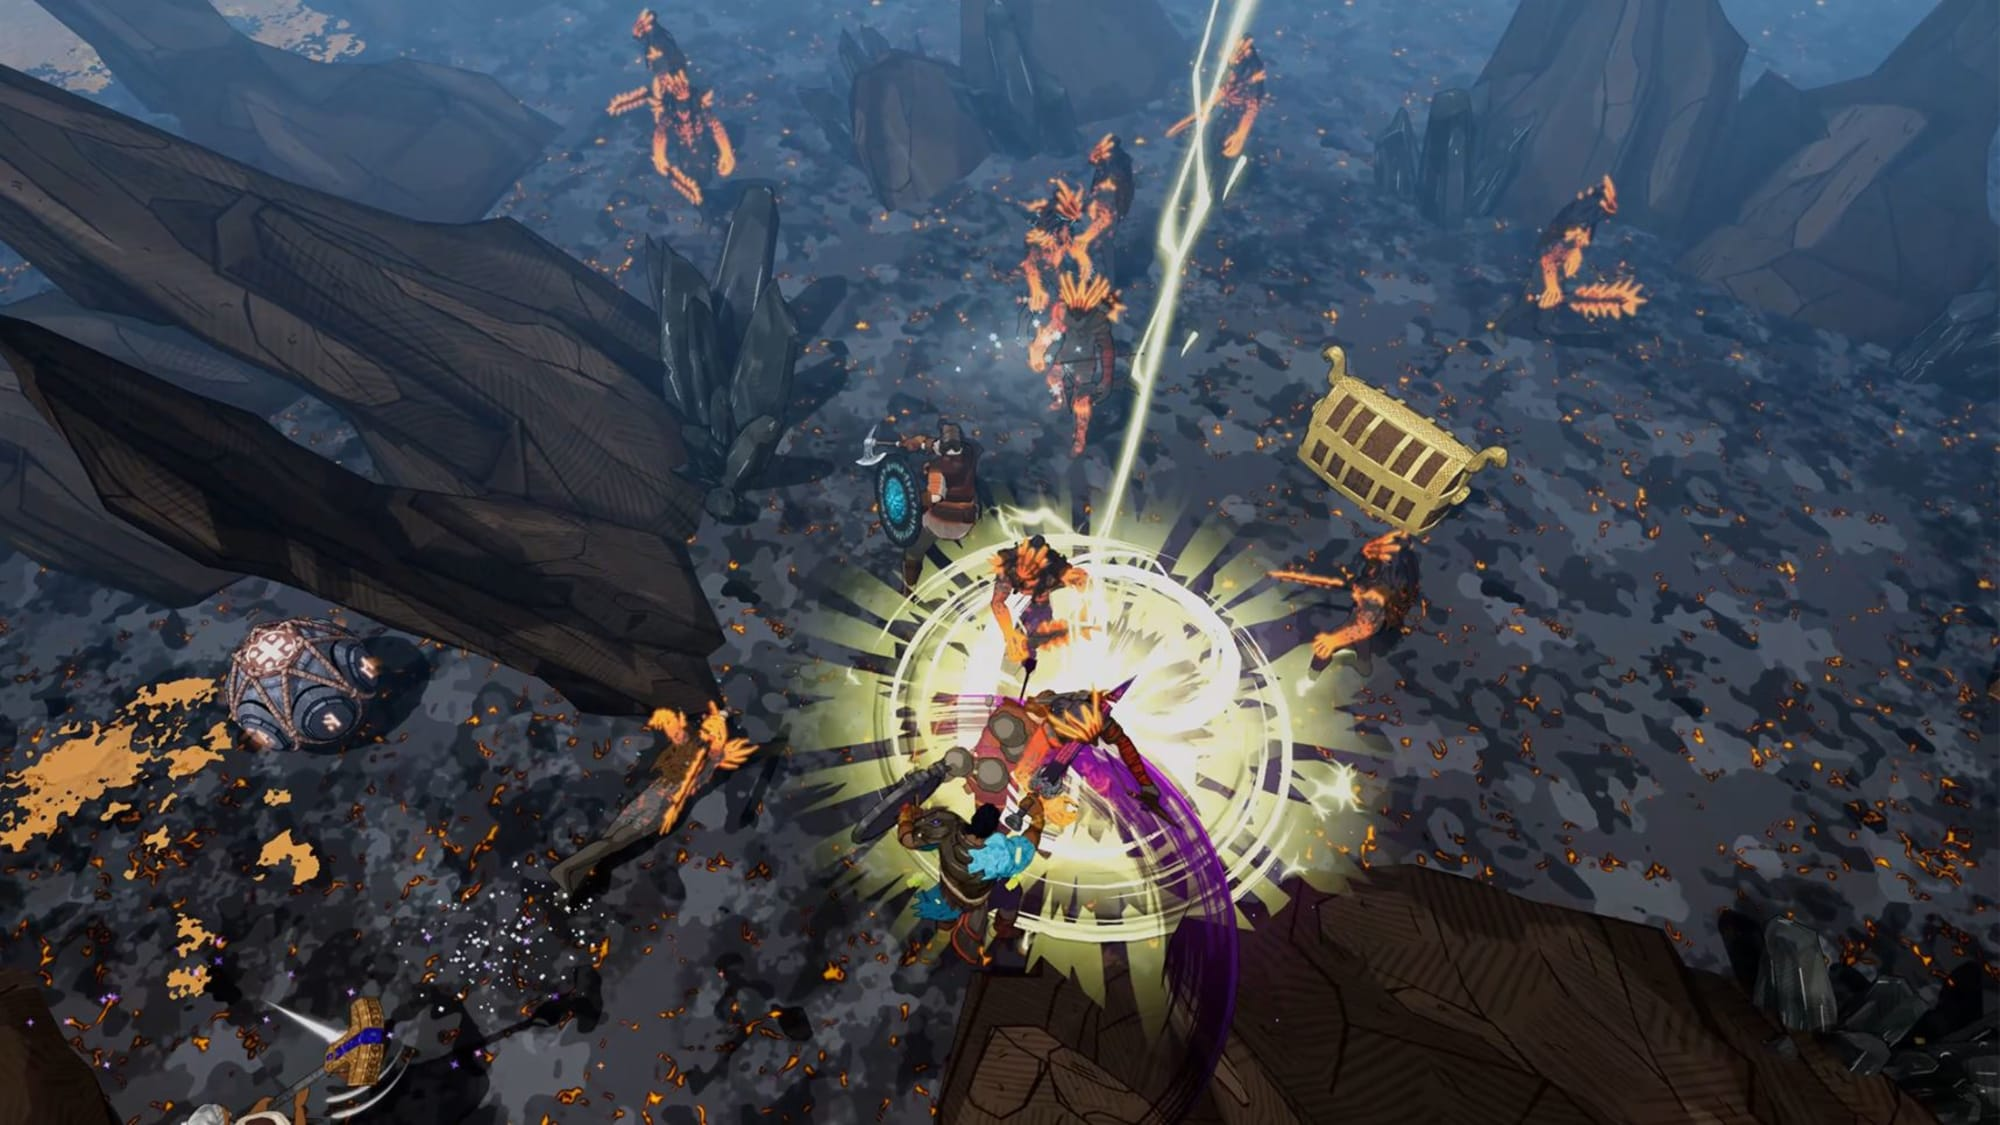 Tribes of Midgard puts your co-op survival skills to the test on PS5 and PC